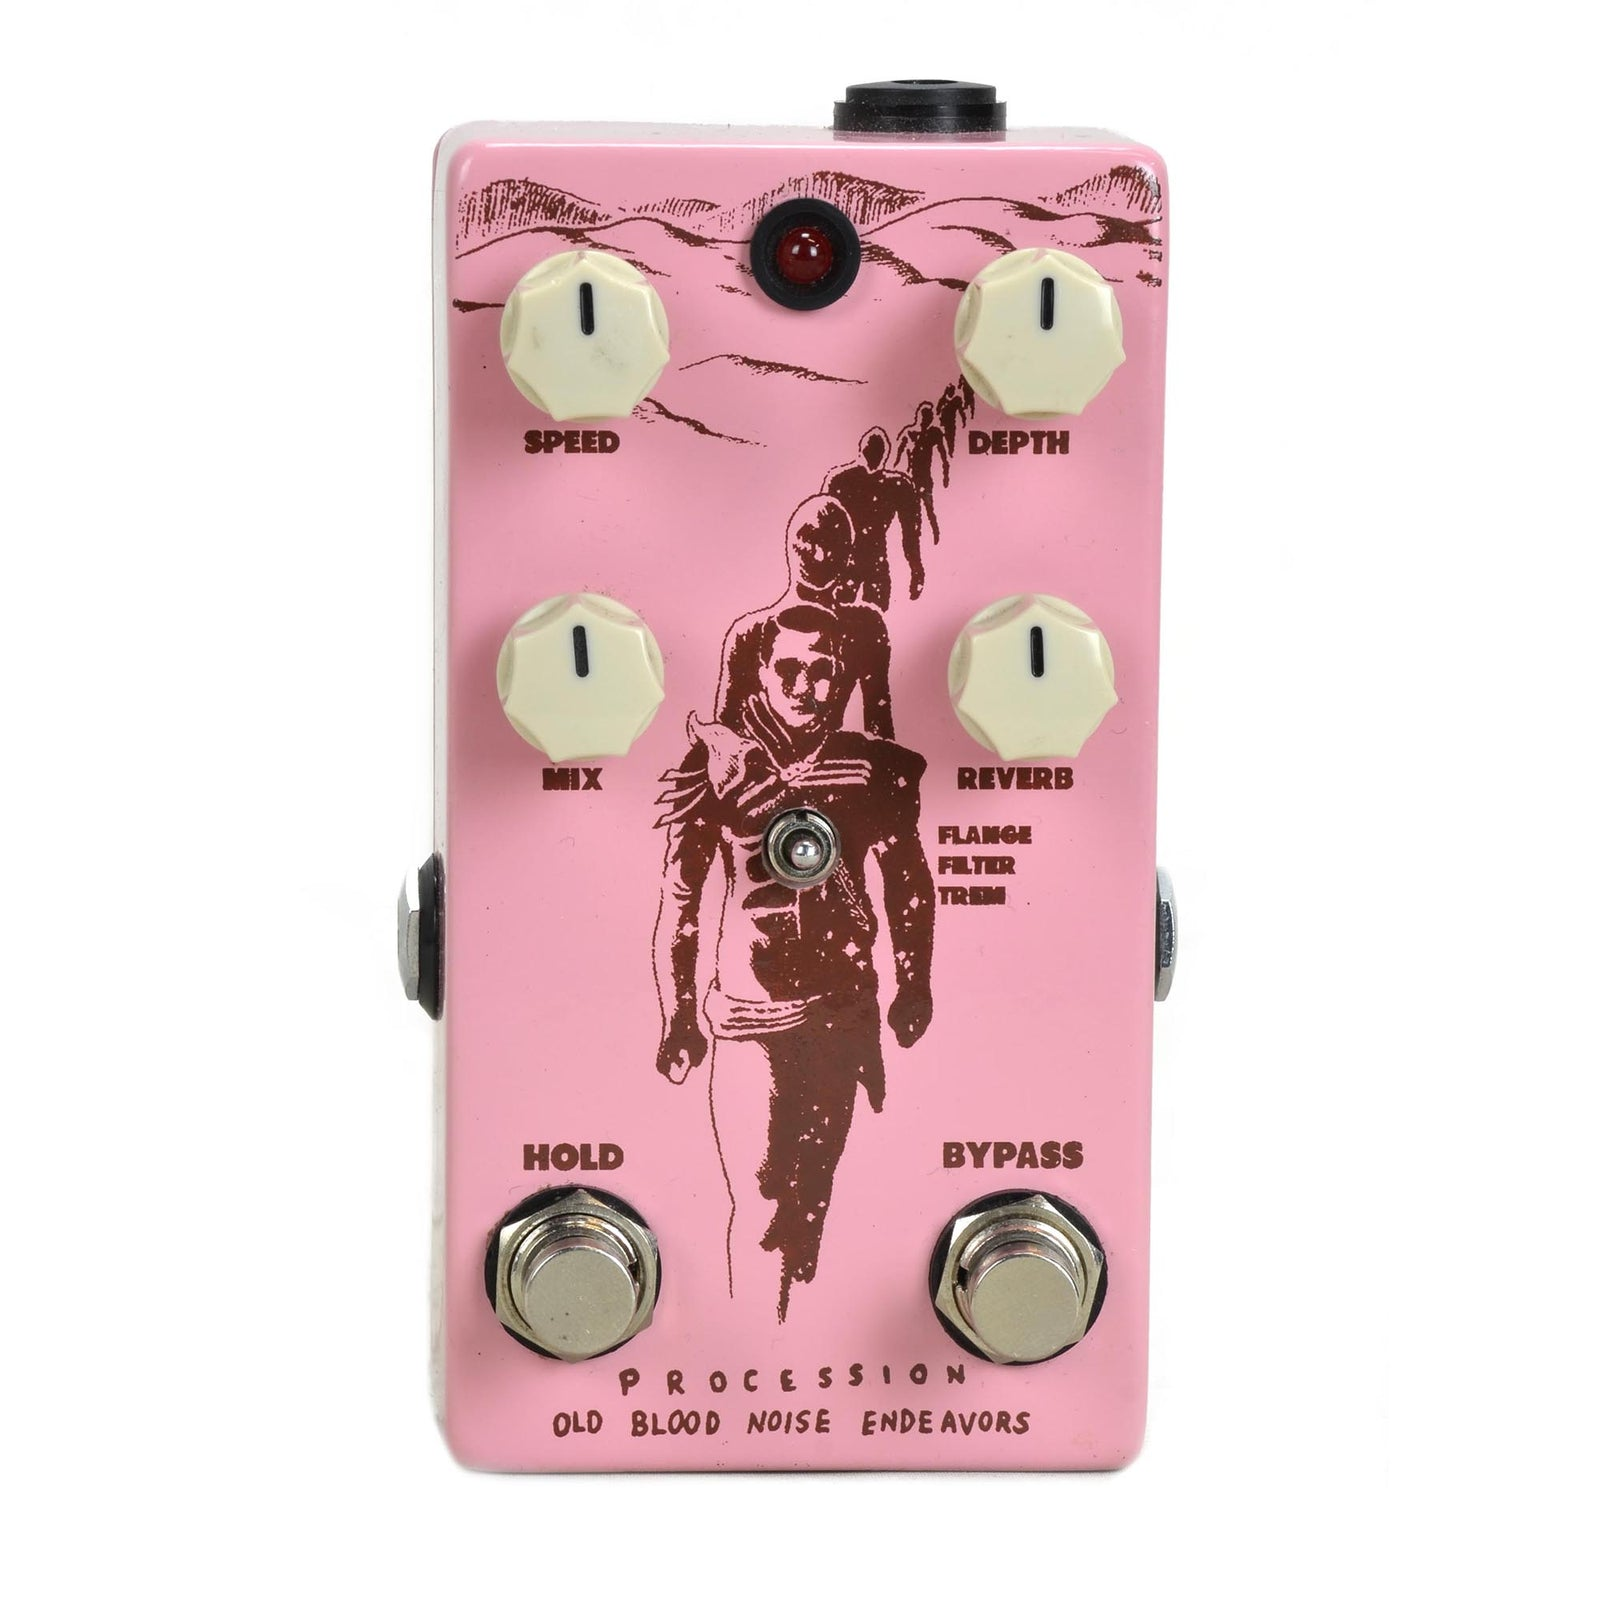 Old Blood Noise Procession Reverb - Russo Music Exclusive Pink - Used